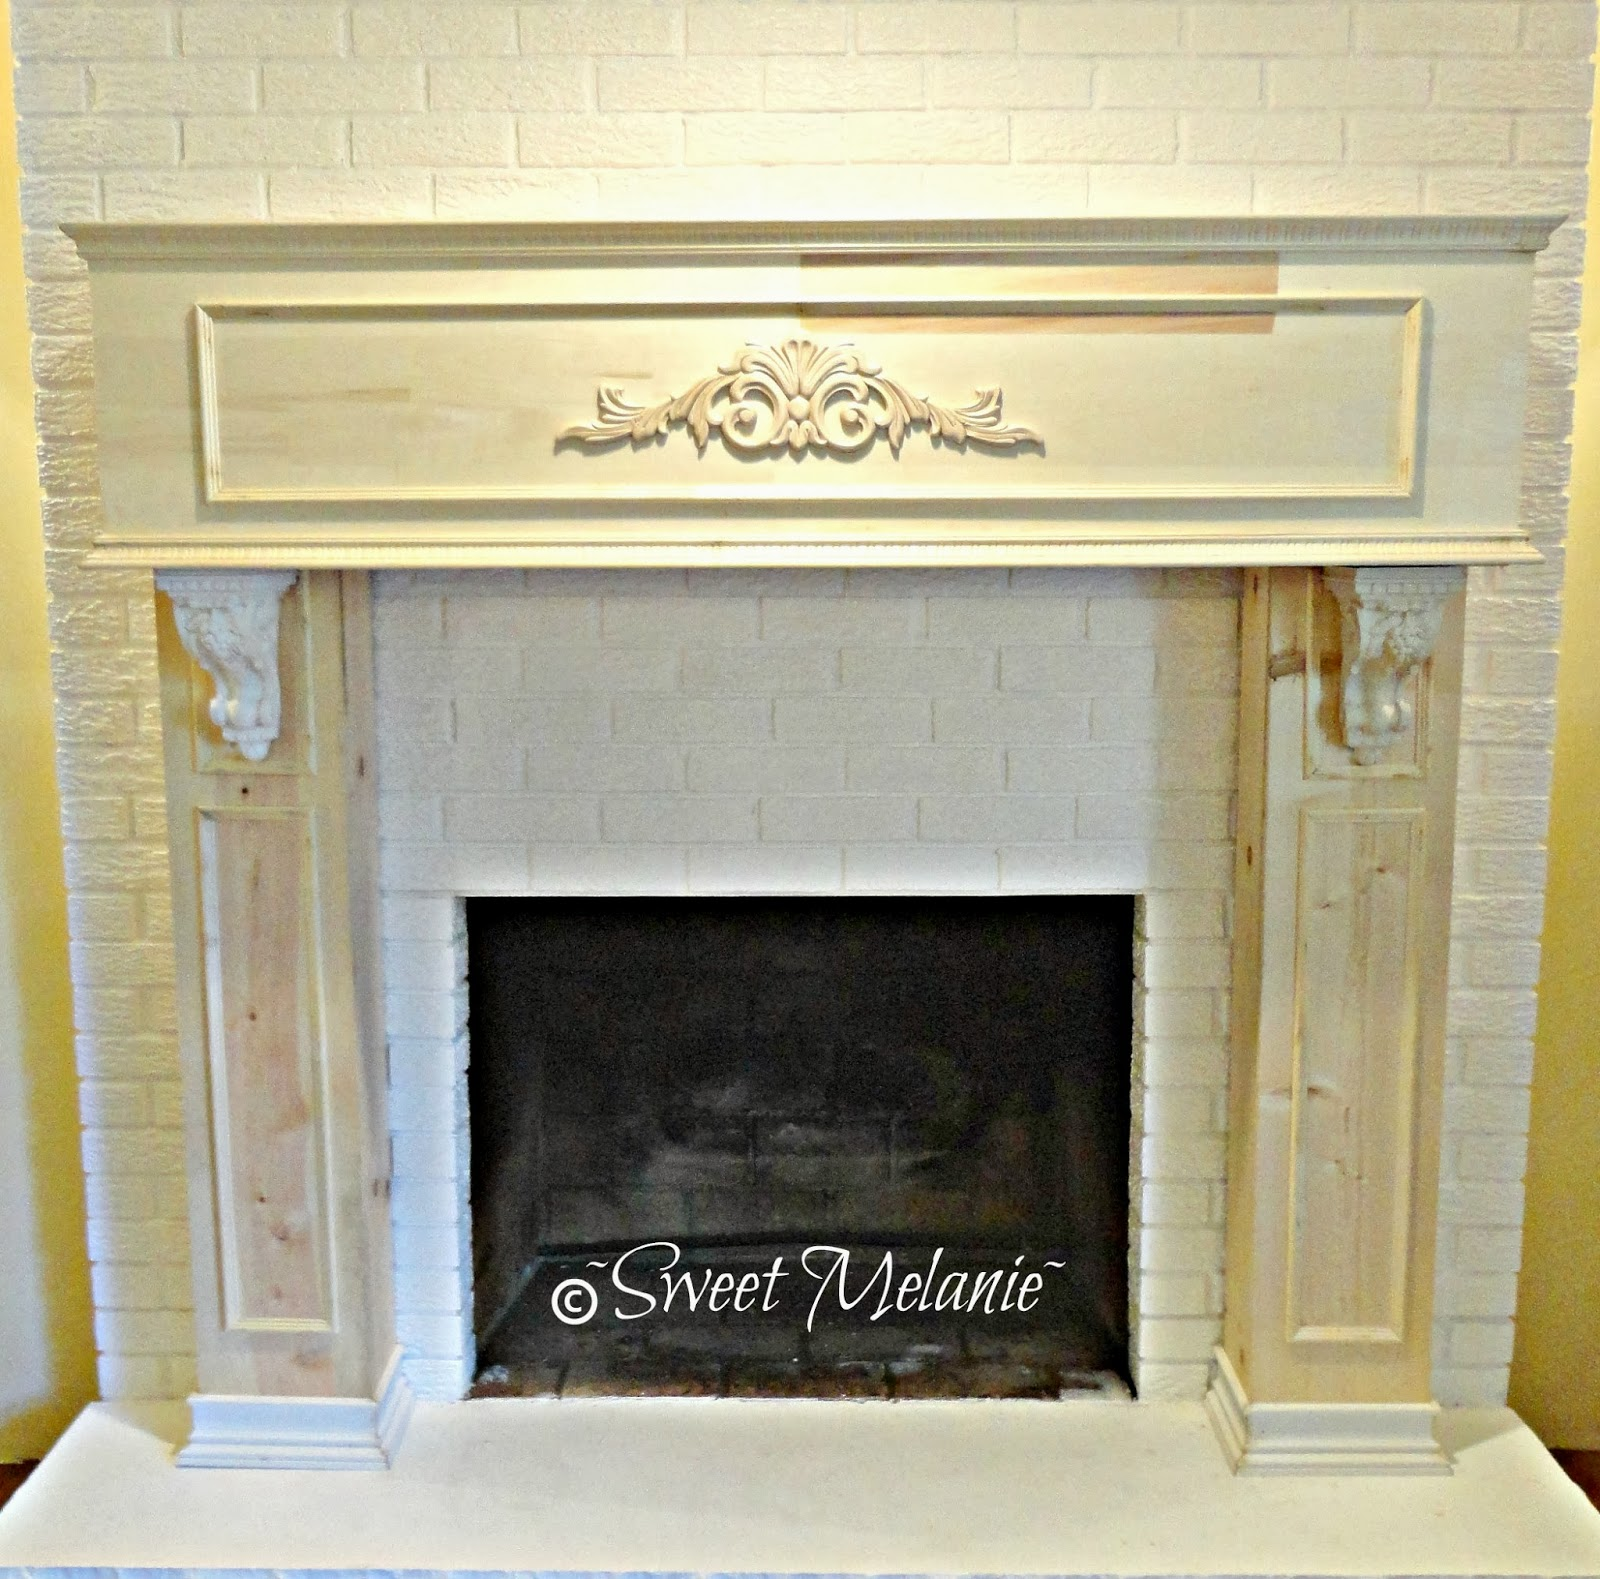 sweet melanie my design on updating an old fireplace